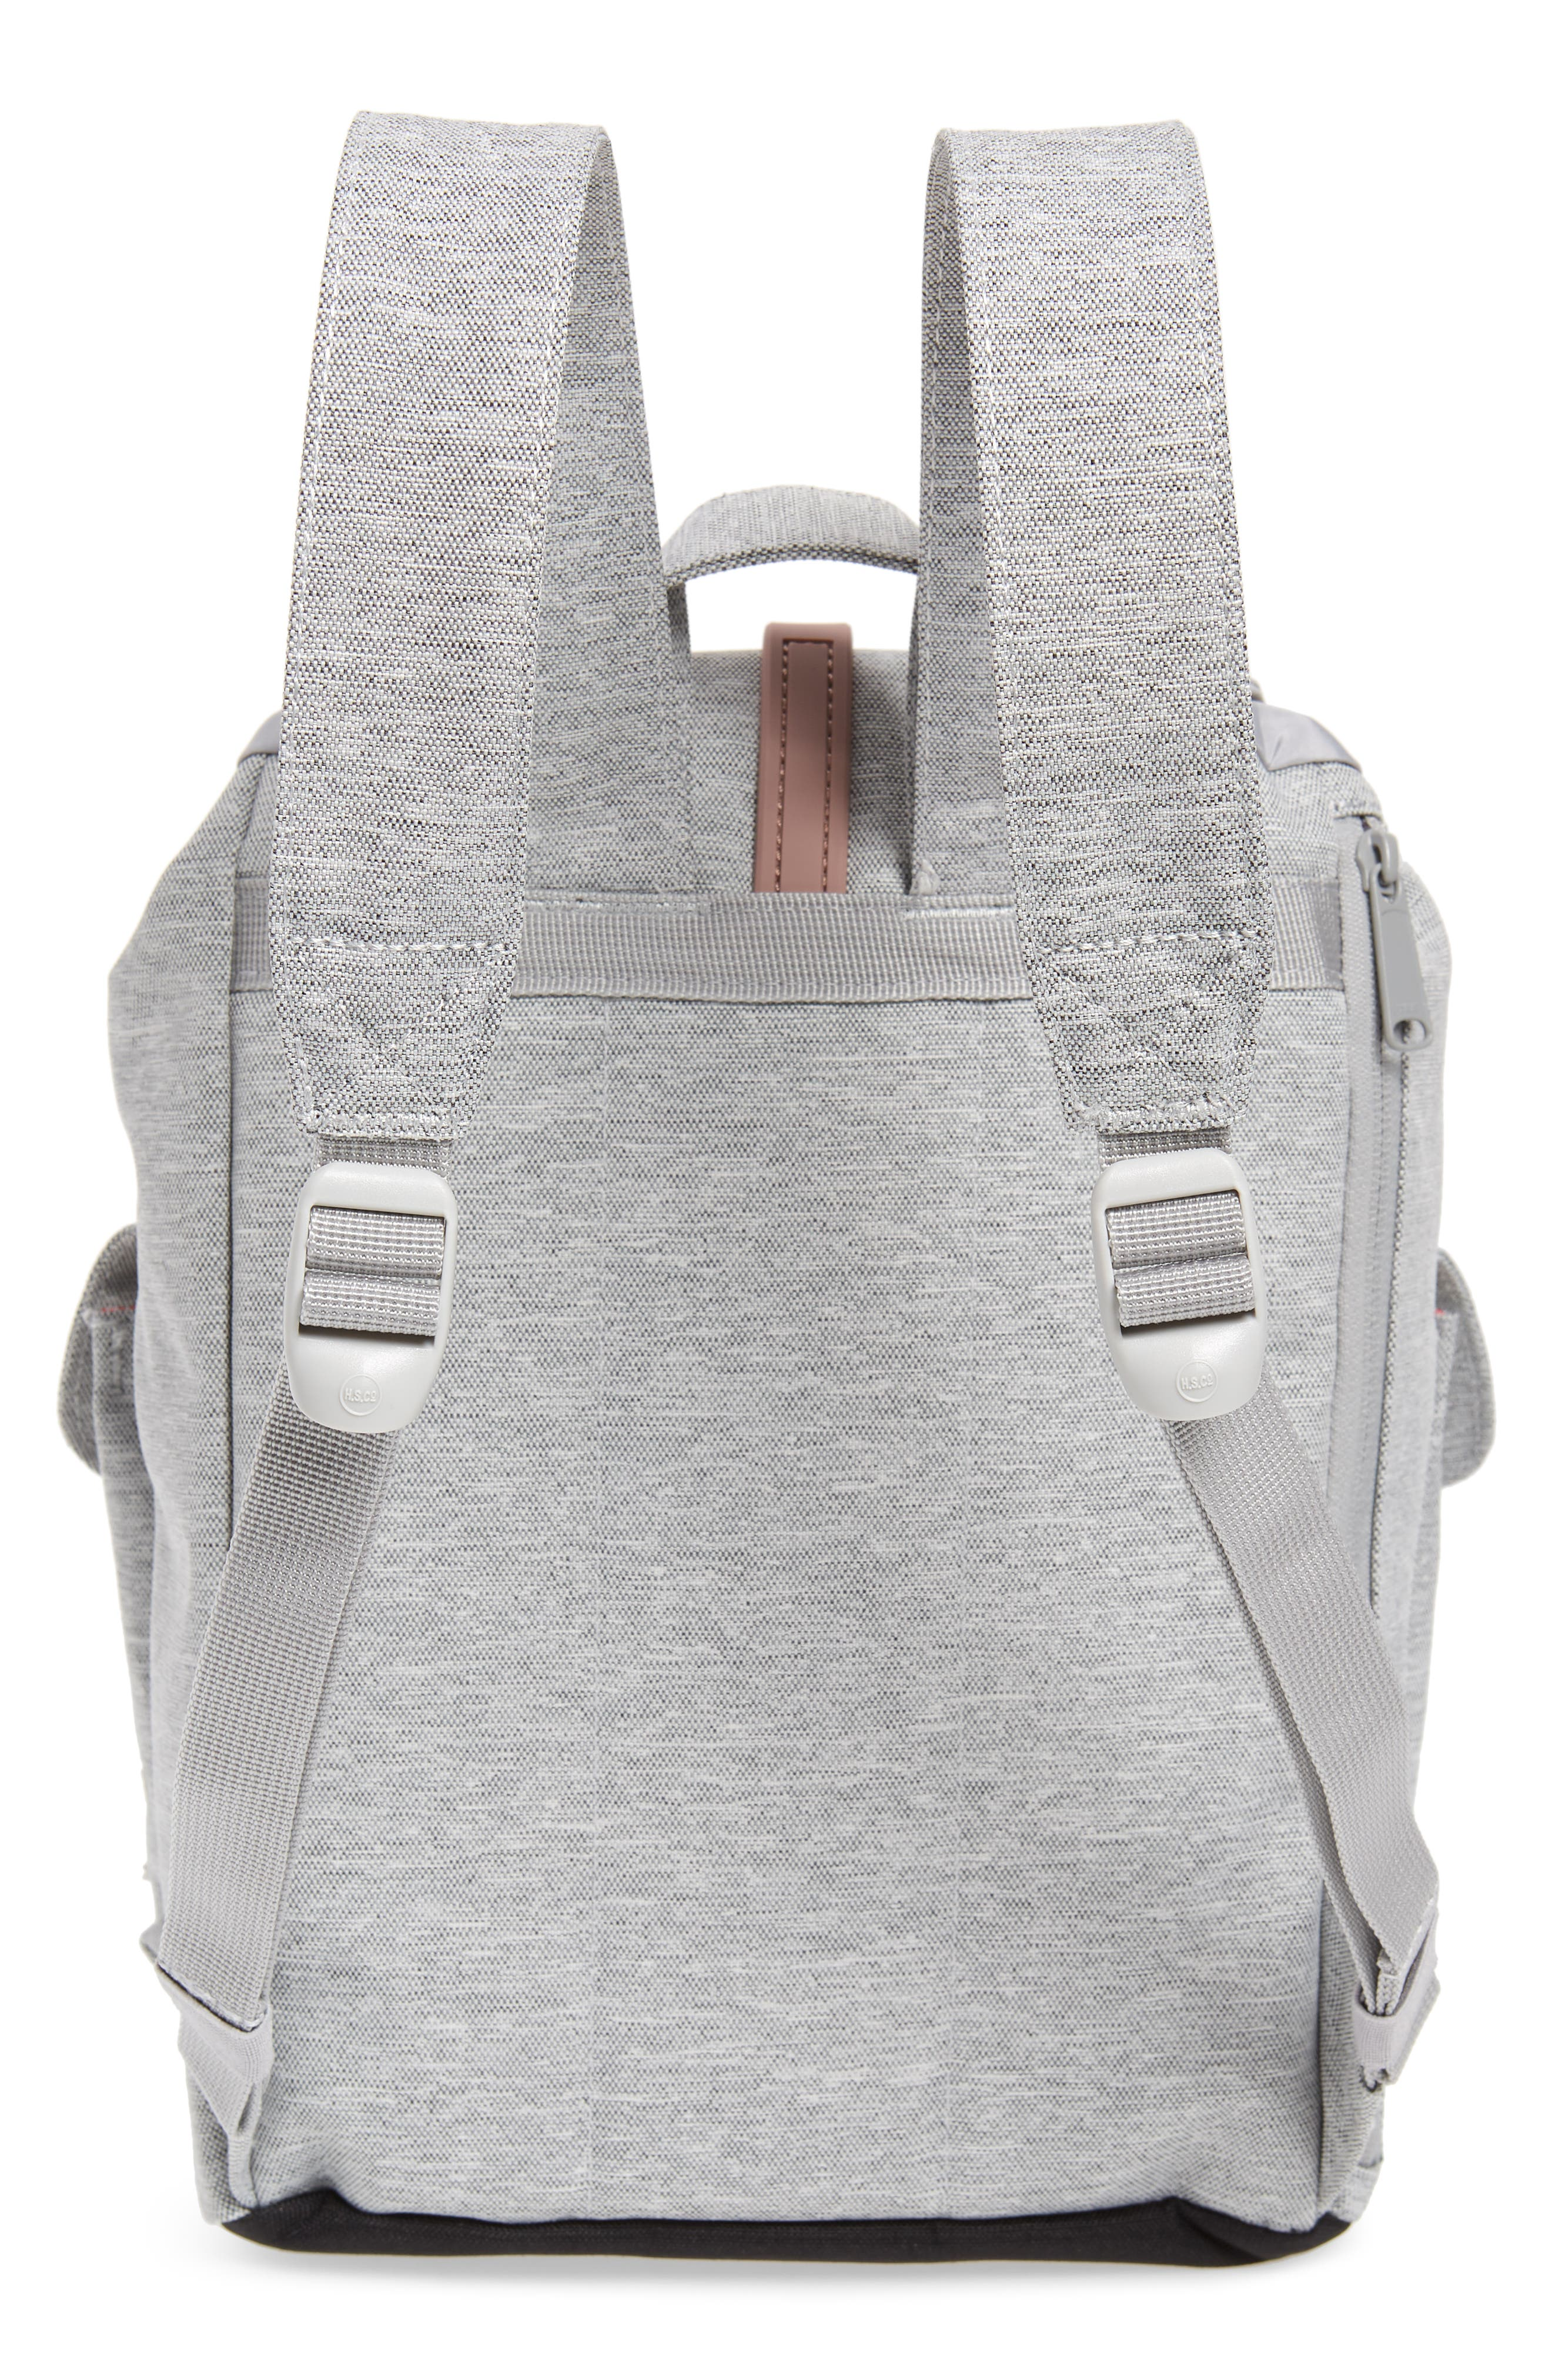 X-Small Dawson Backpack,                             Alternate thumbnail 3, color,                             LIGHT GREY/ ASH ROSE/ BLACK